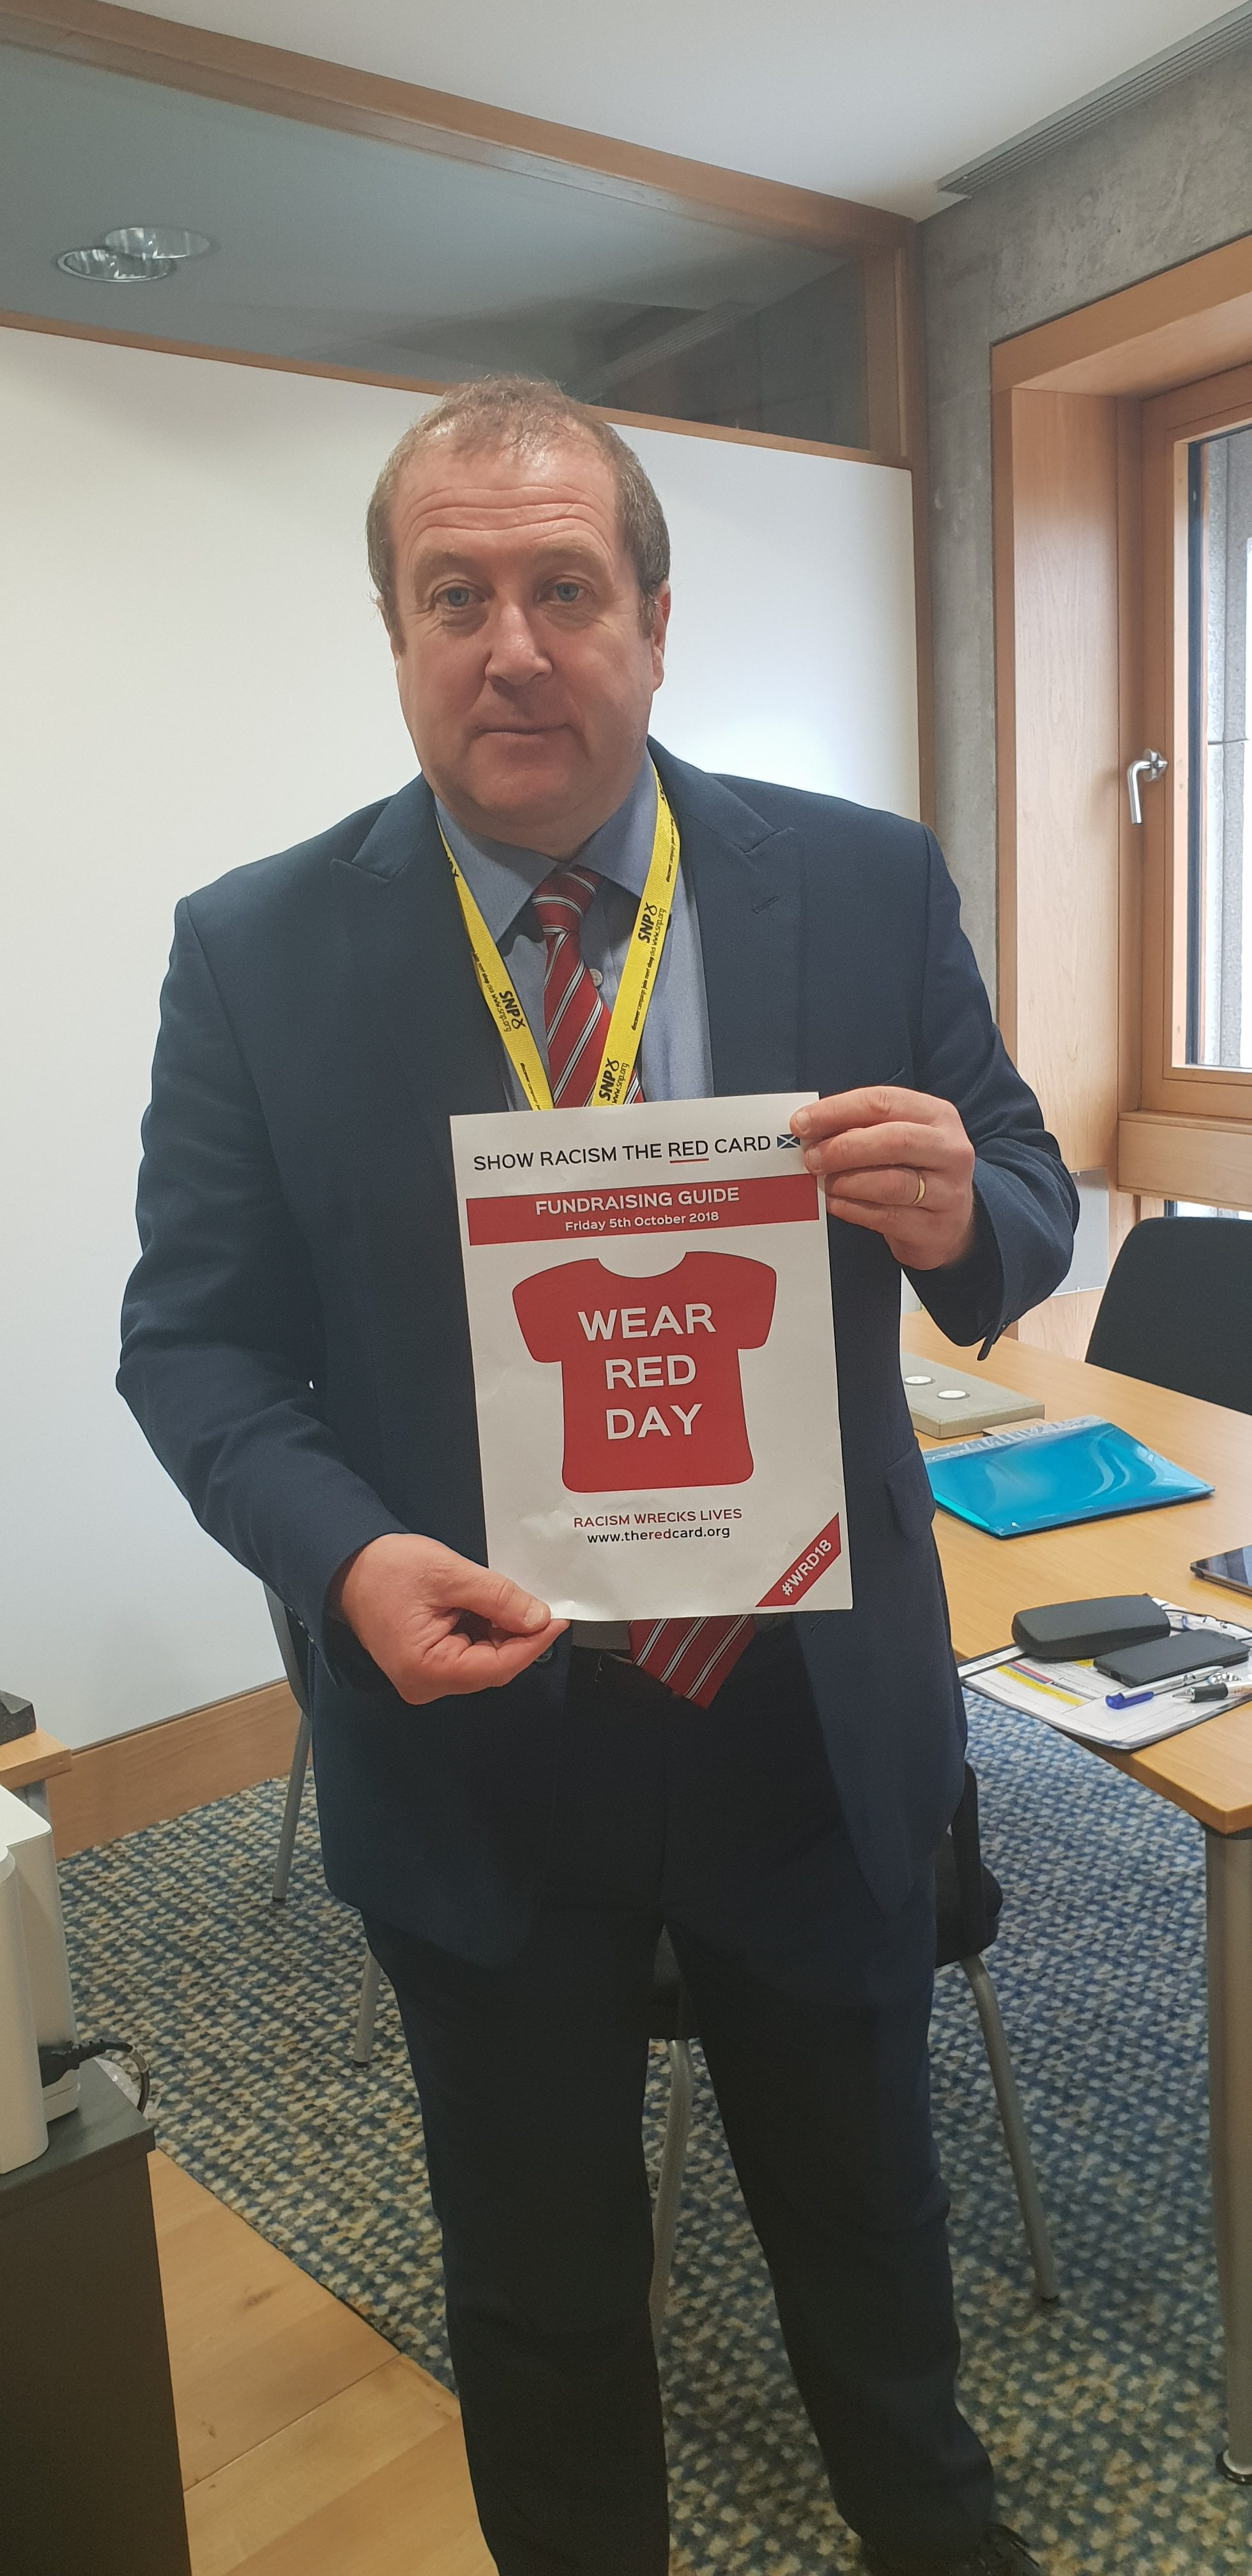 GRAEME DEY MSP PROUD TO SUPPORT 'WEAR RED DAY 2018'